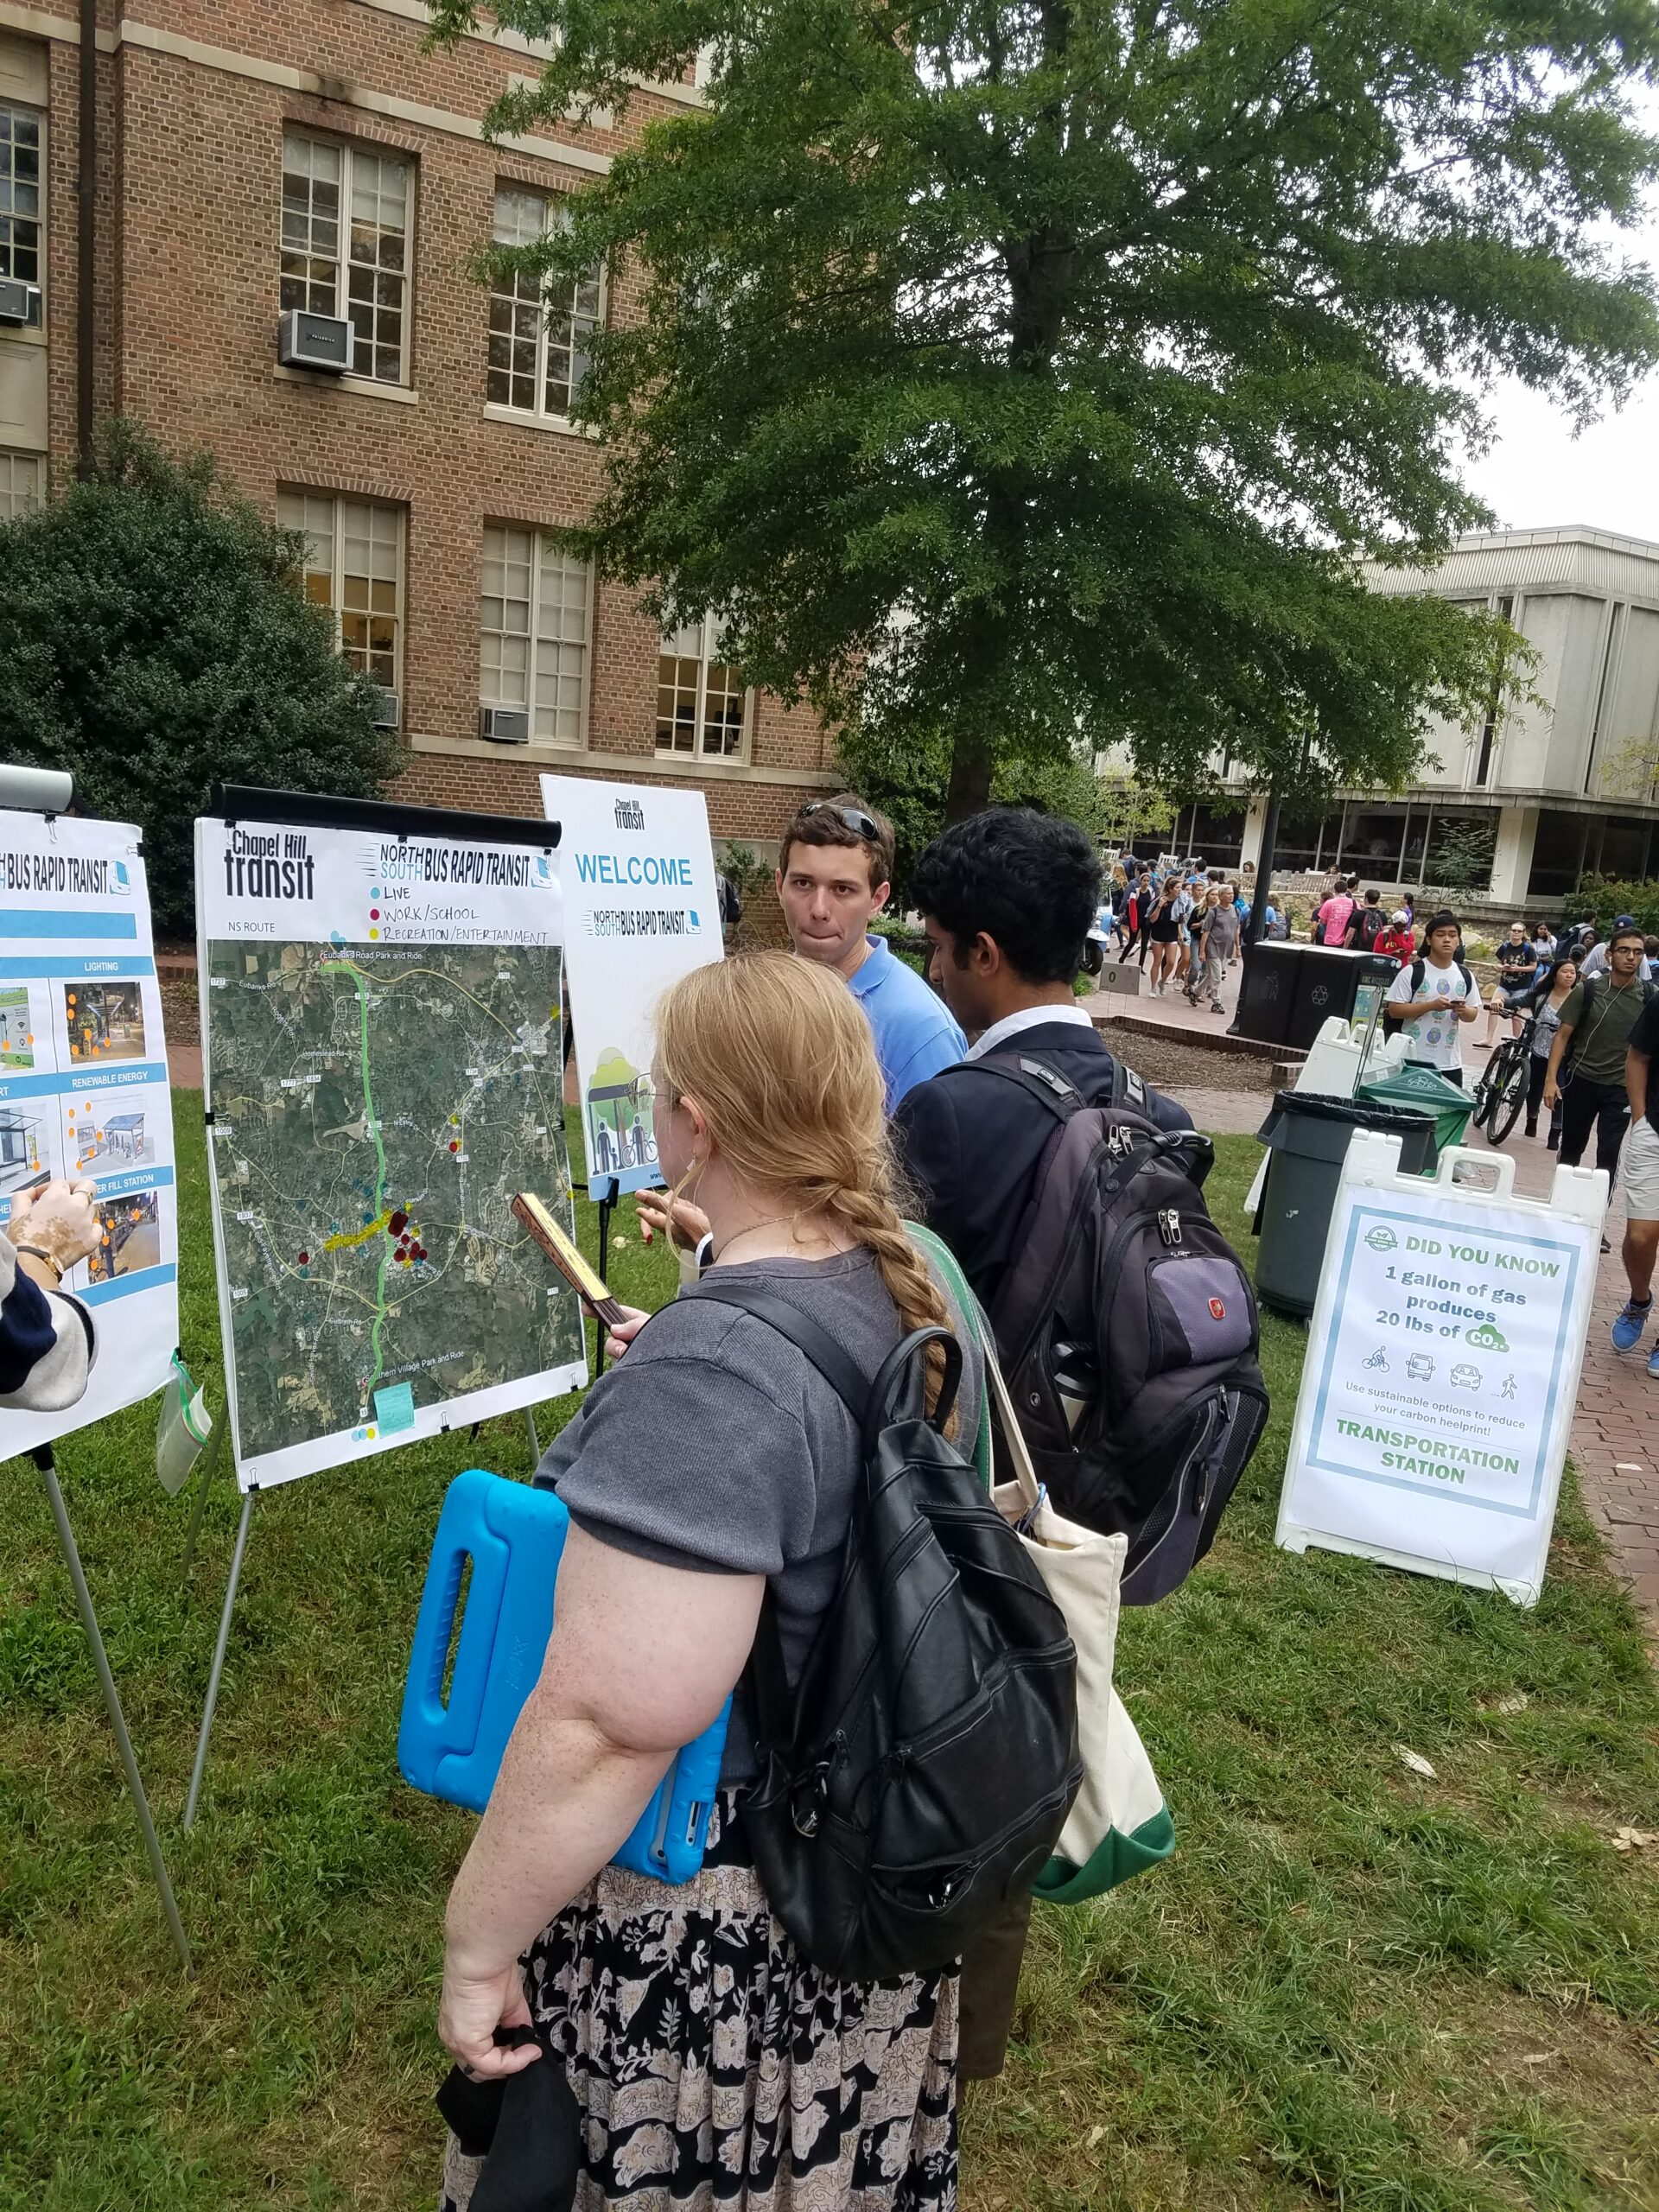 UNC students viewing project posters at the UNC Transportation Fair.